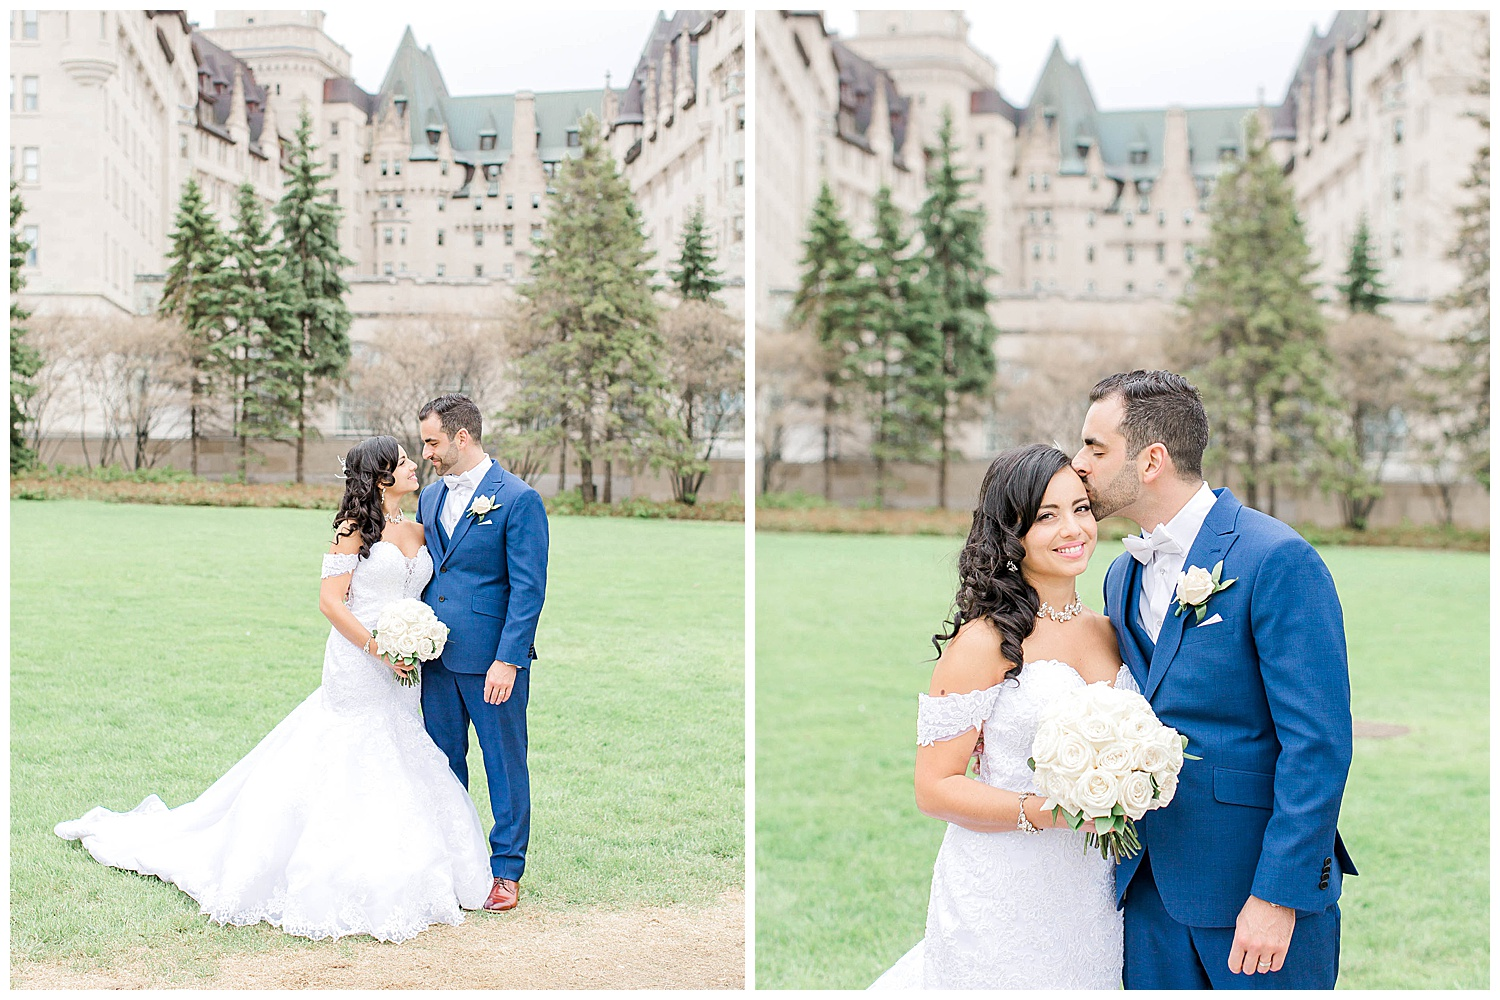 OttawaWeddingPhotographer_TwentyTwoWestinWedding_StephanieMasonPhotography.jpg